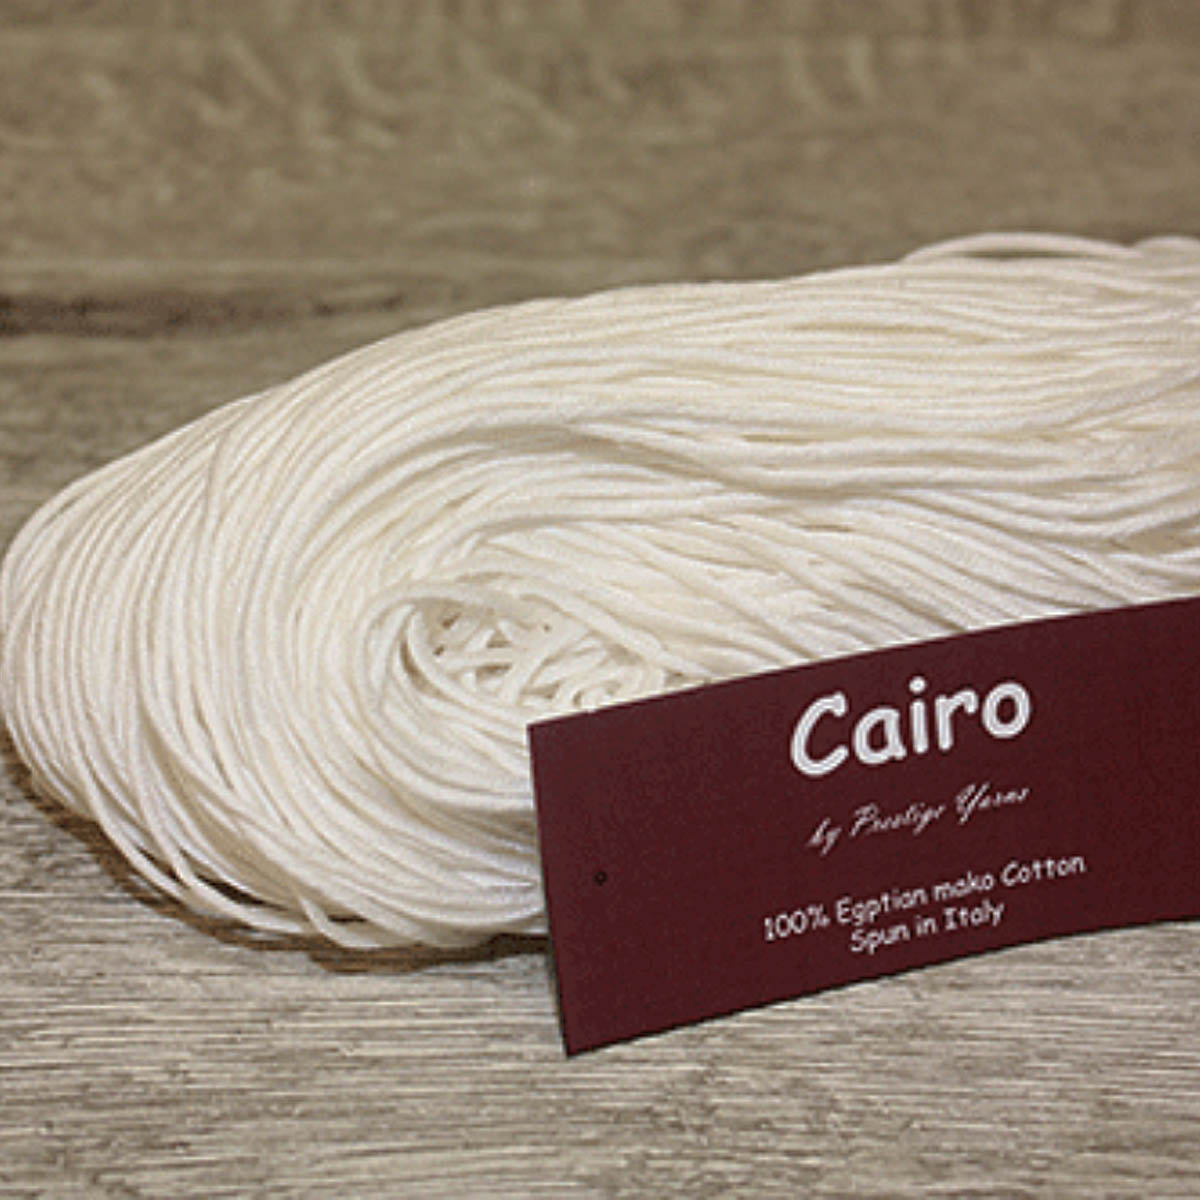 PY CAIRO Ecru/Undyed 100% Egyptian Mako cotton 8ply/DK/Lt Worsted 100g/250 metres